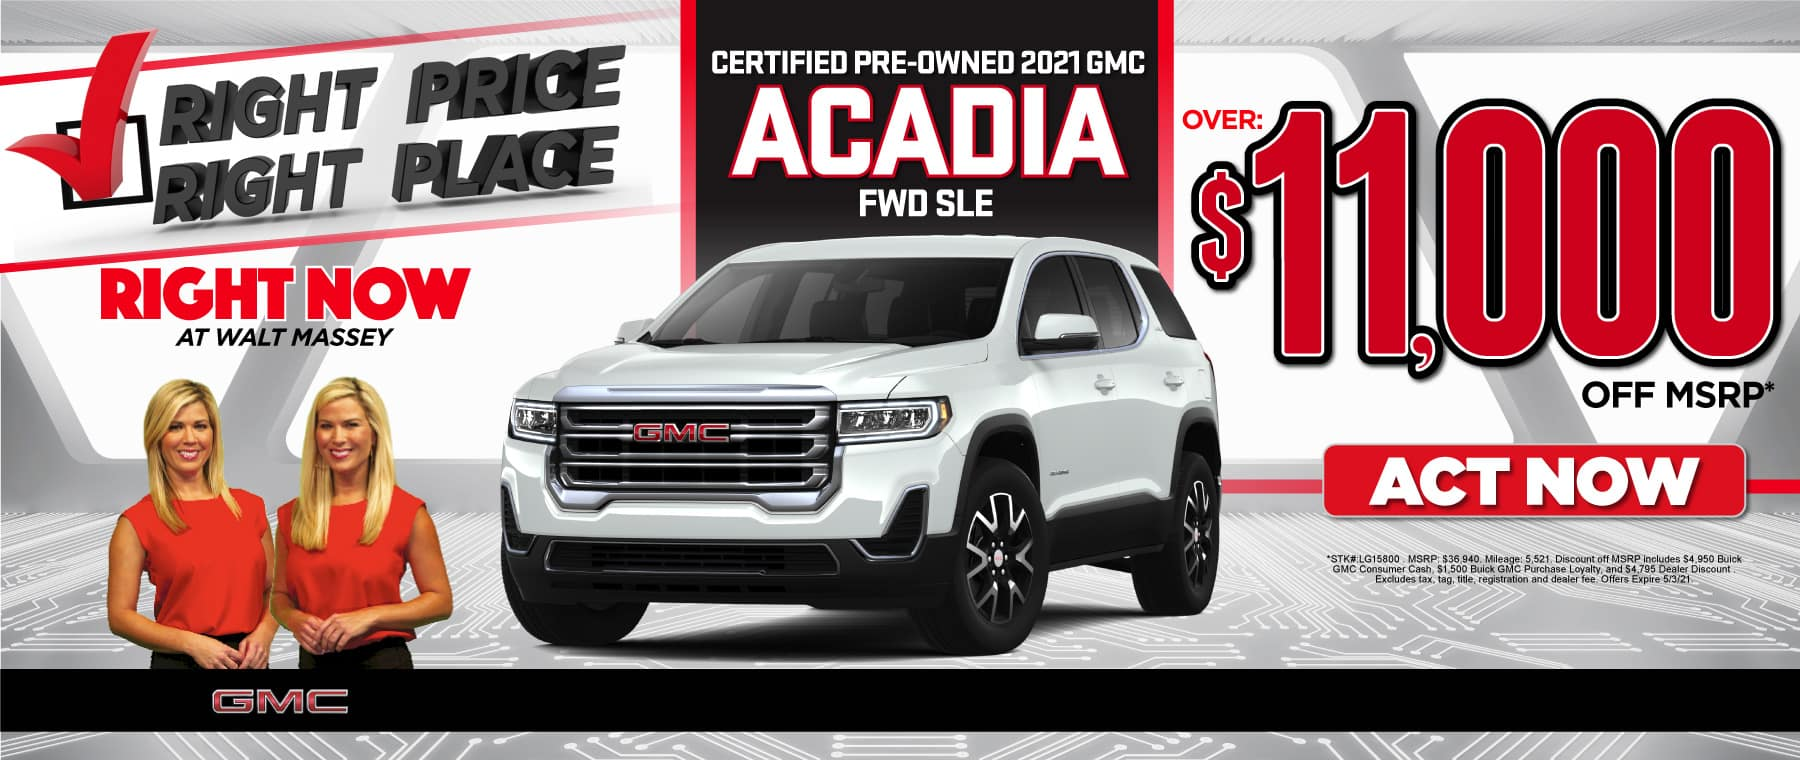 Certified Pre-Owned 2021 GMC Acadia - $11,000 off msrp - Act Now